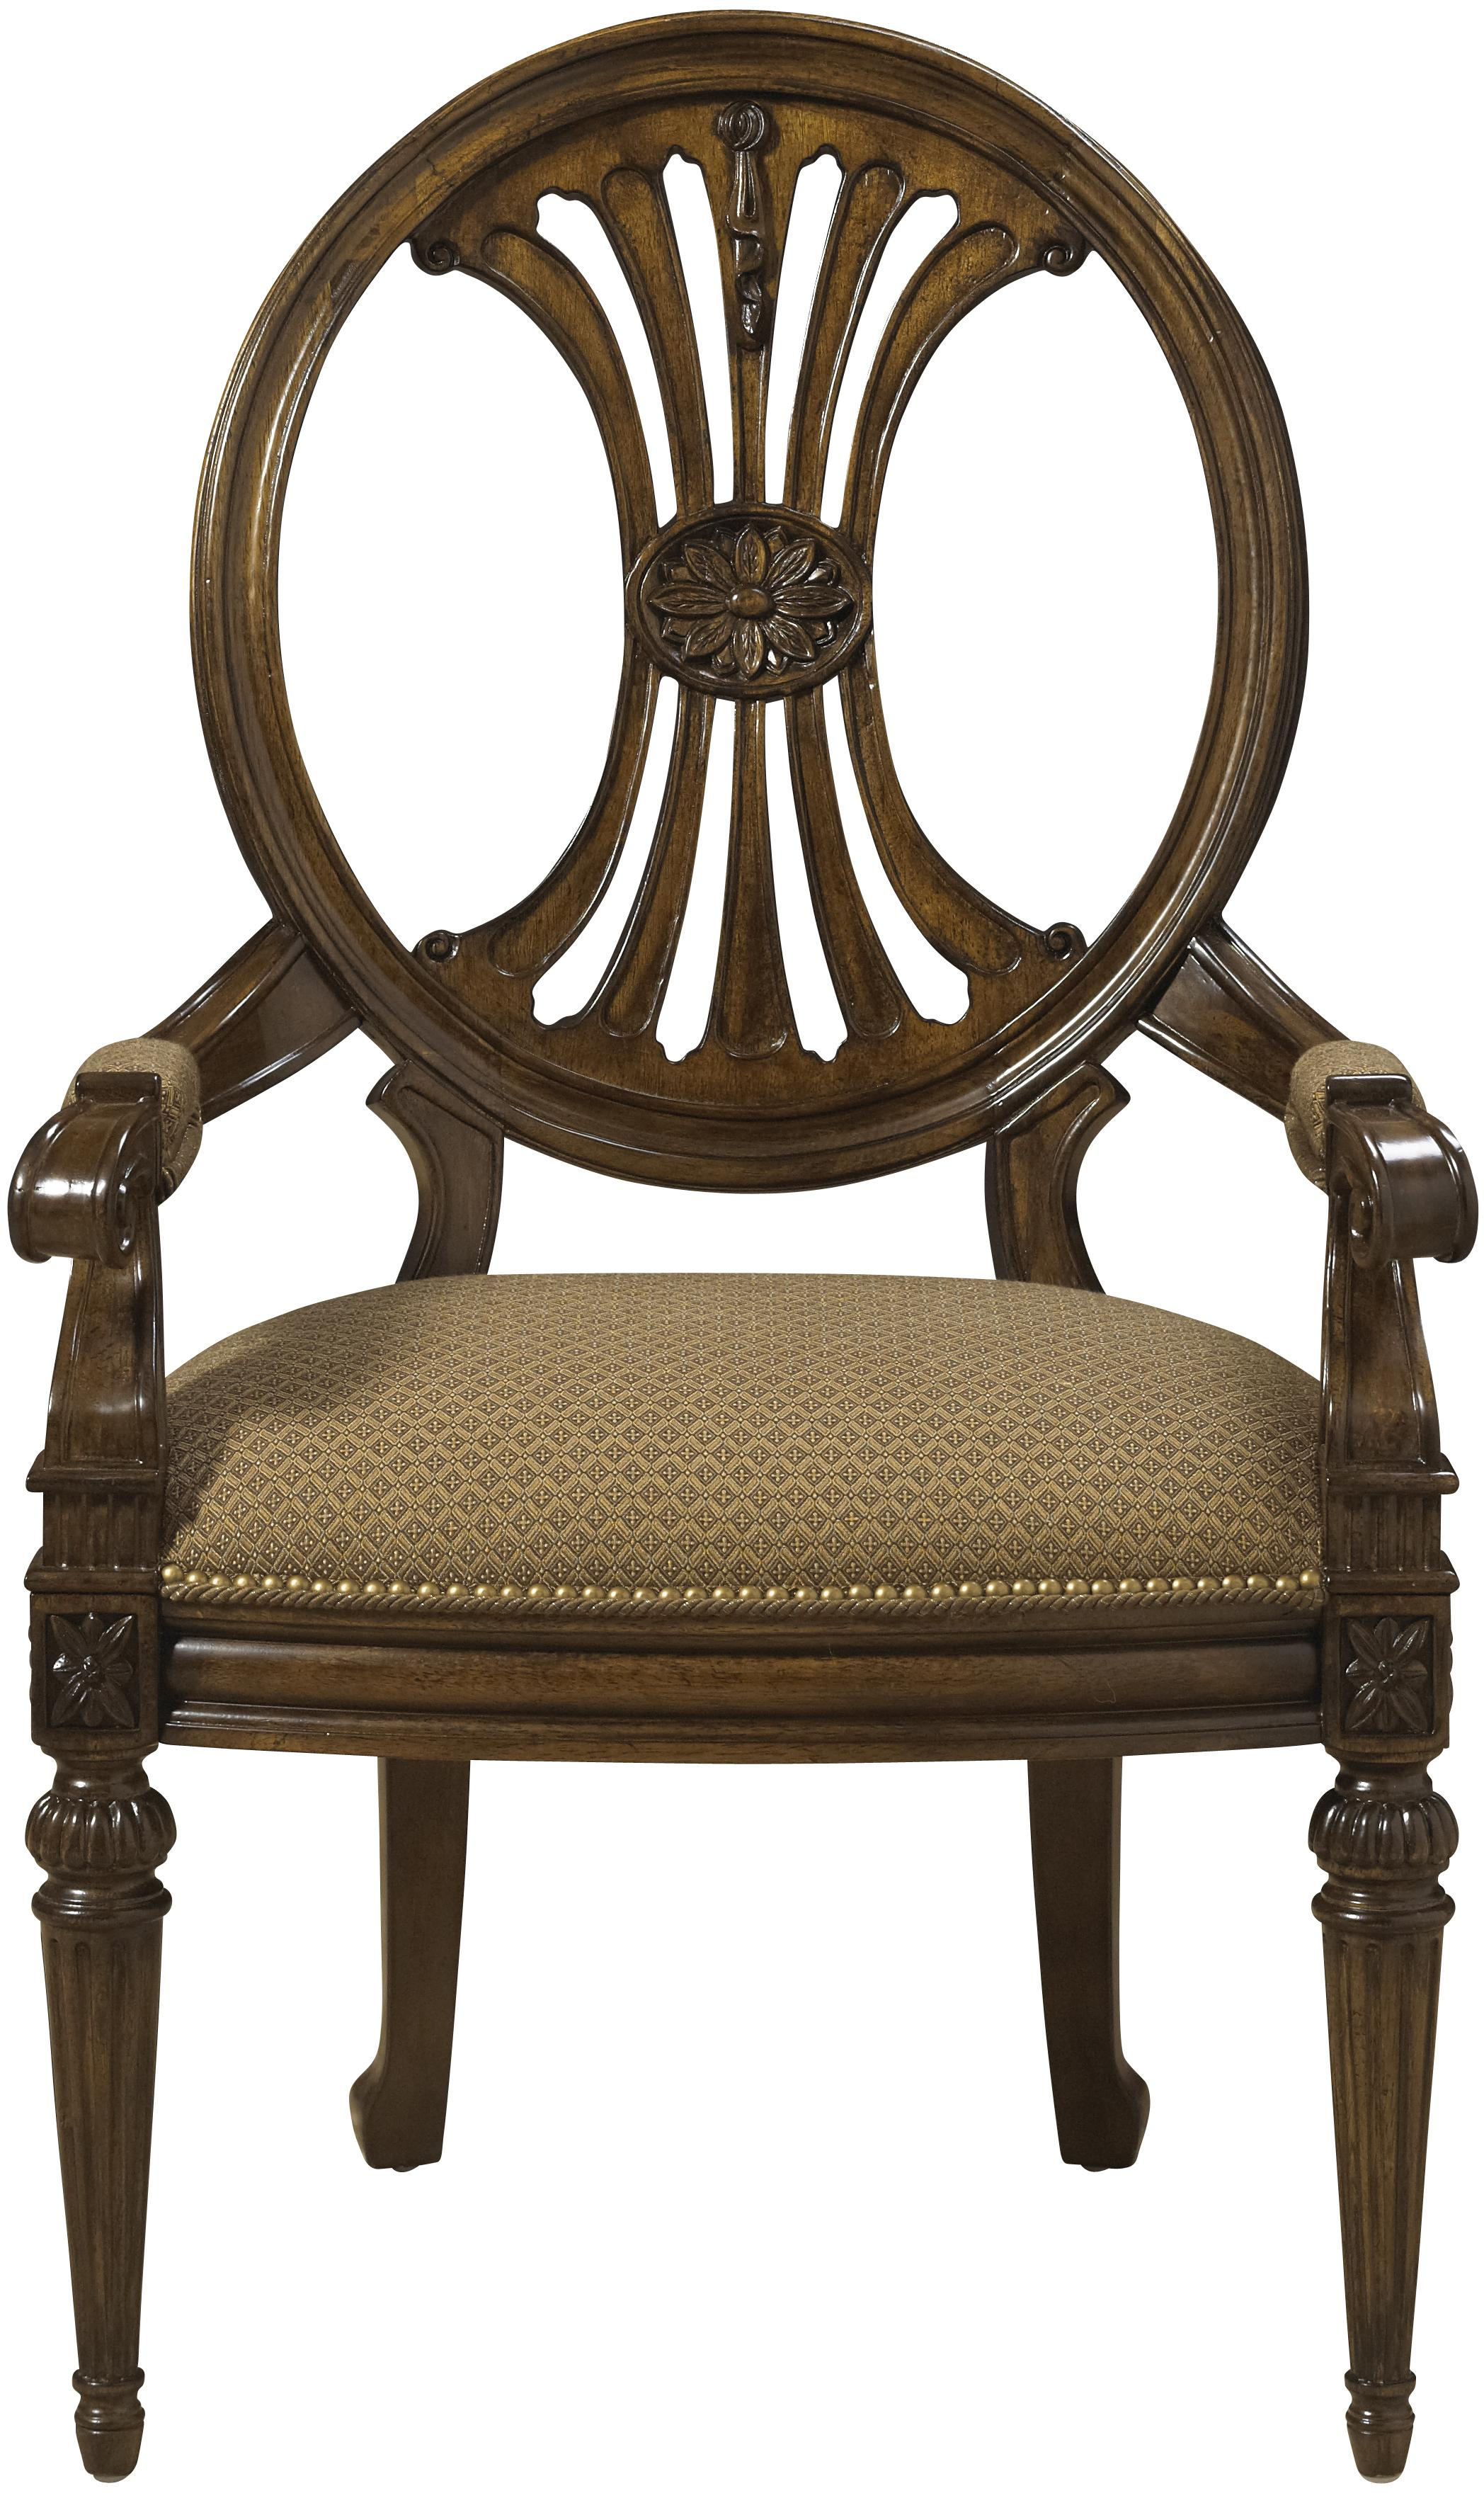 Antique Wooden Chair Designs | www.pixshark.com - Images ...